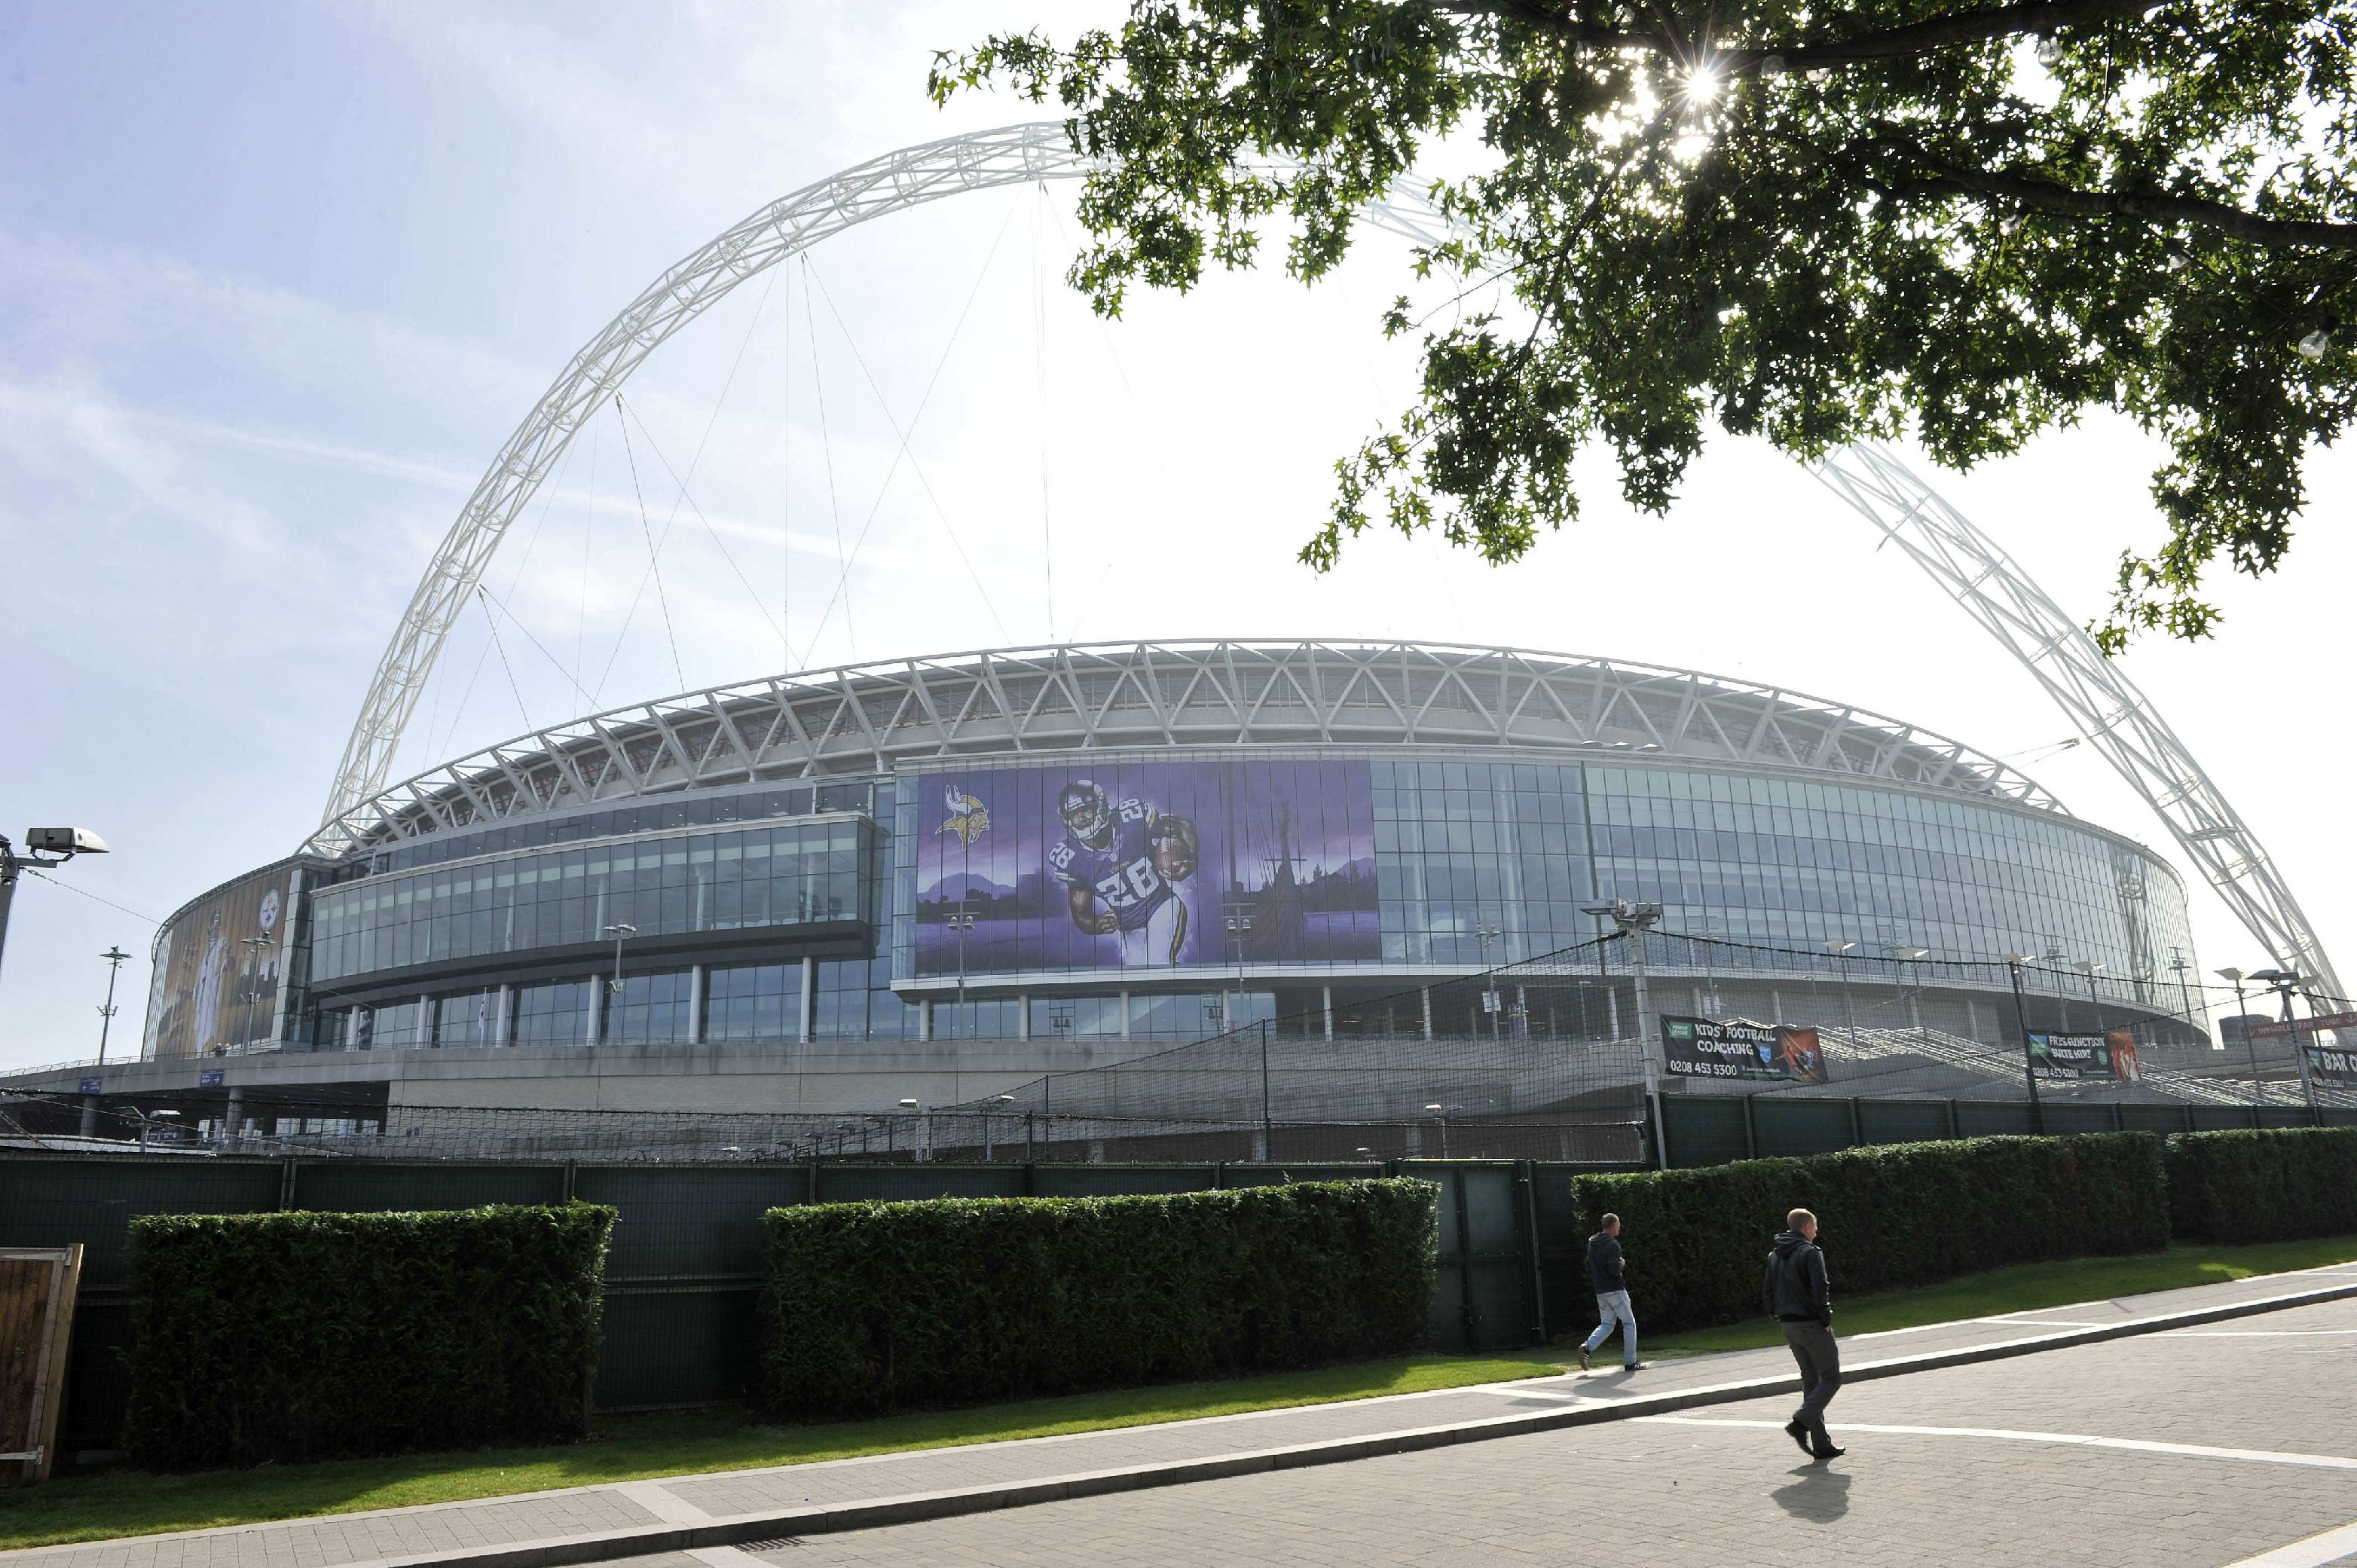 People walk past Wembley Stadium in London, Tuesday Sept. 24, 2013. The Pittsburgh Steelers are to play the Minnesota Vikings in the NFL International Series at Wembley Stadium in London on Sunday, Sept 29